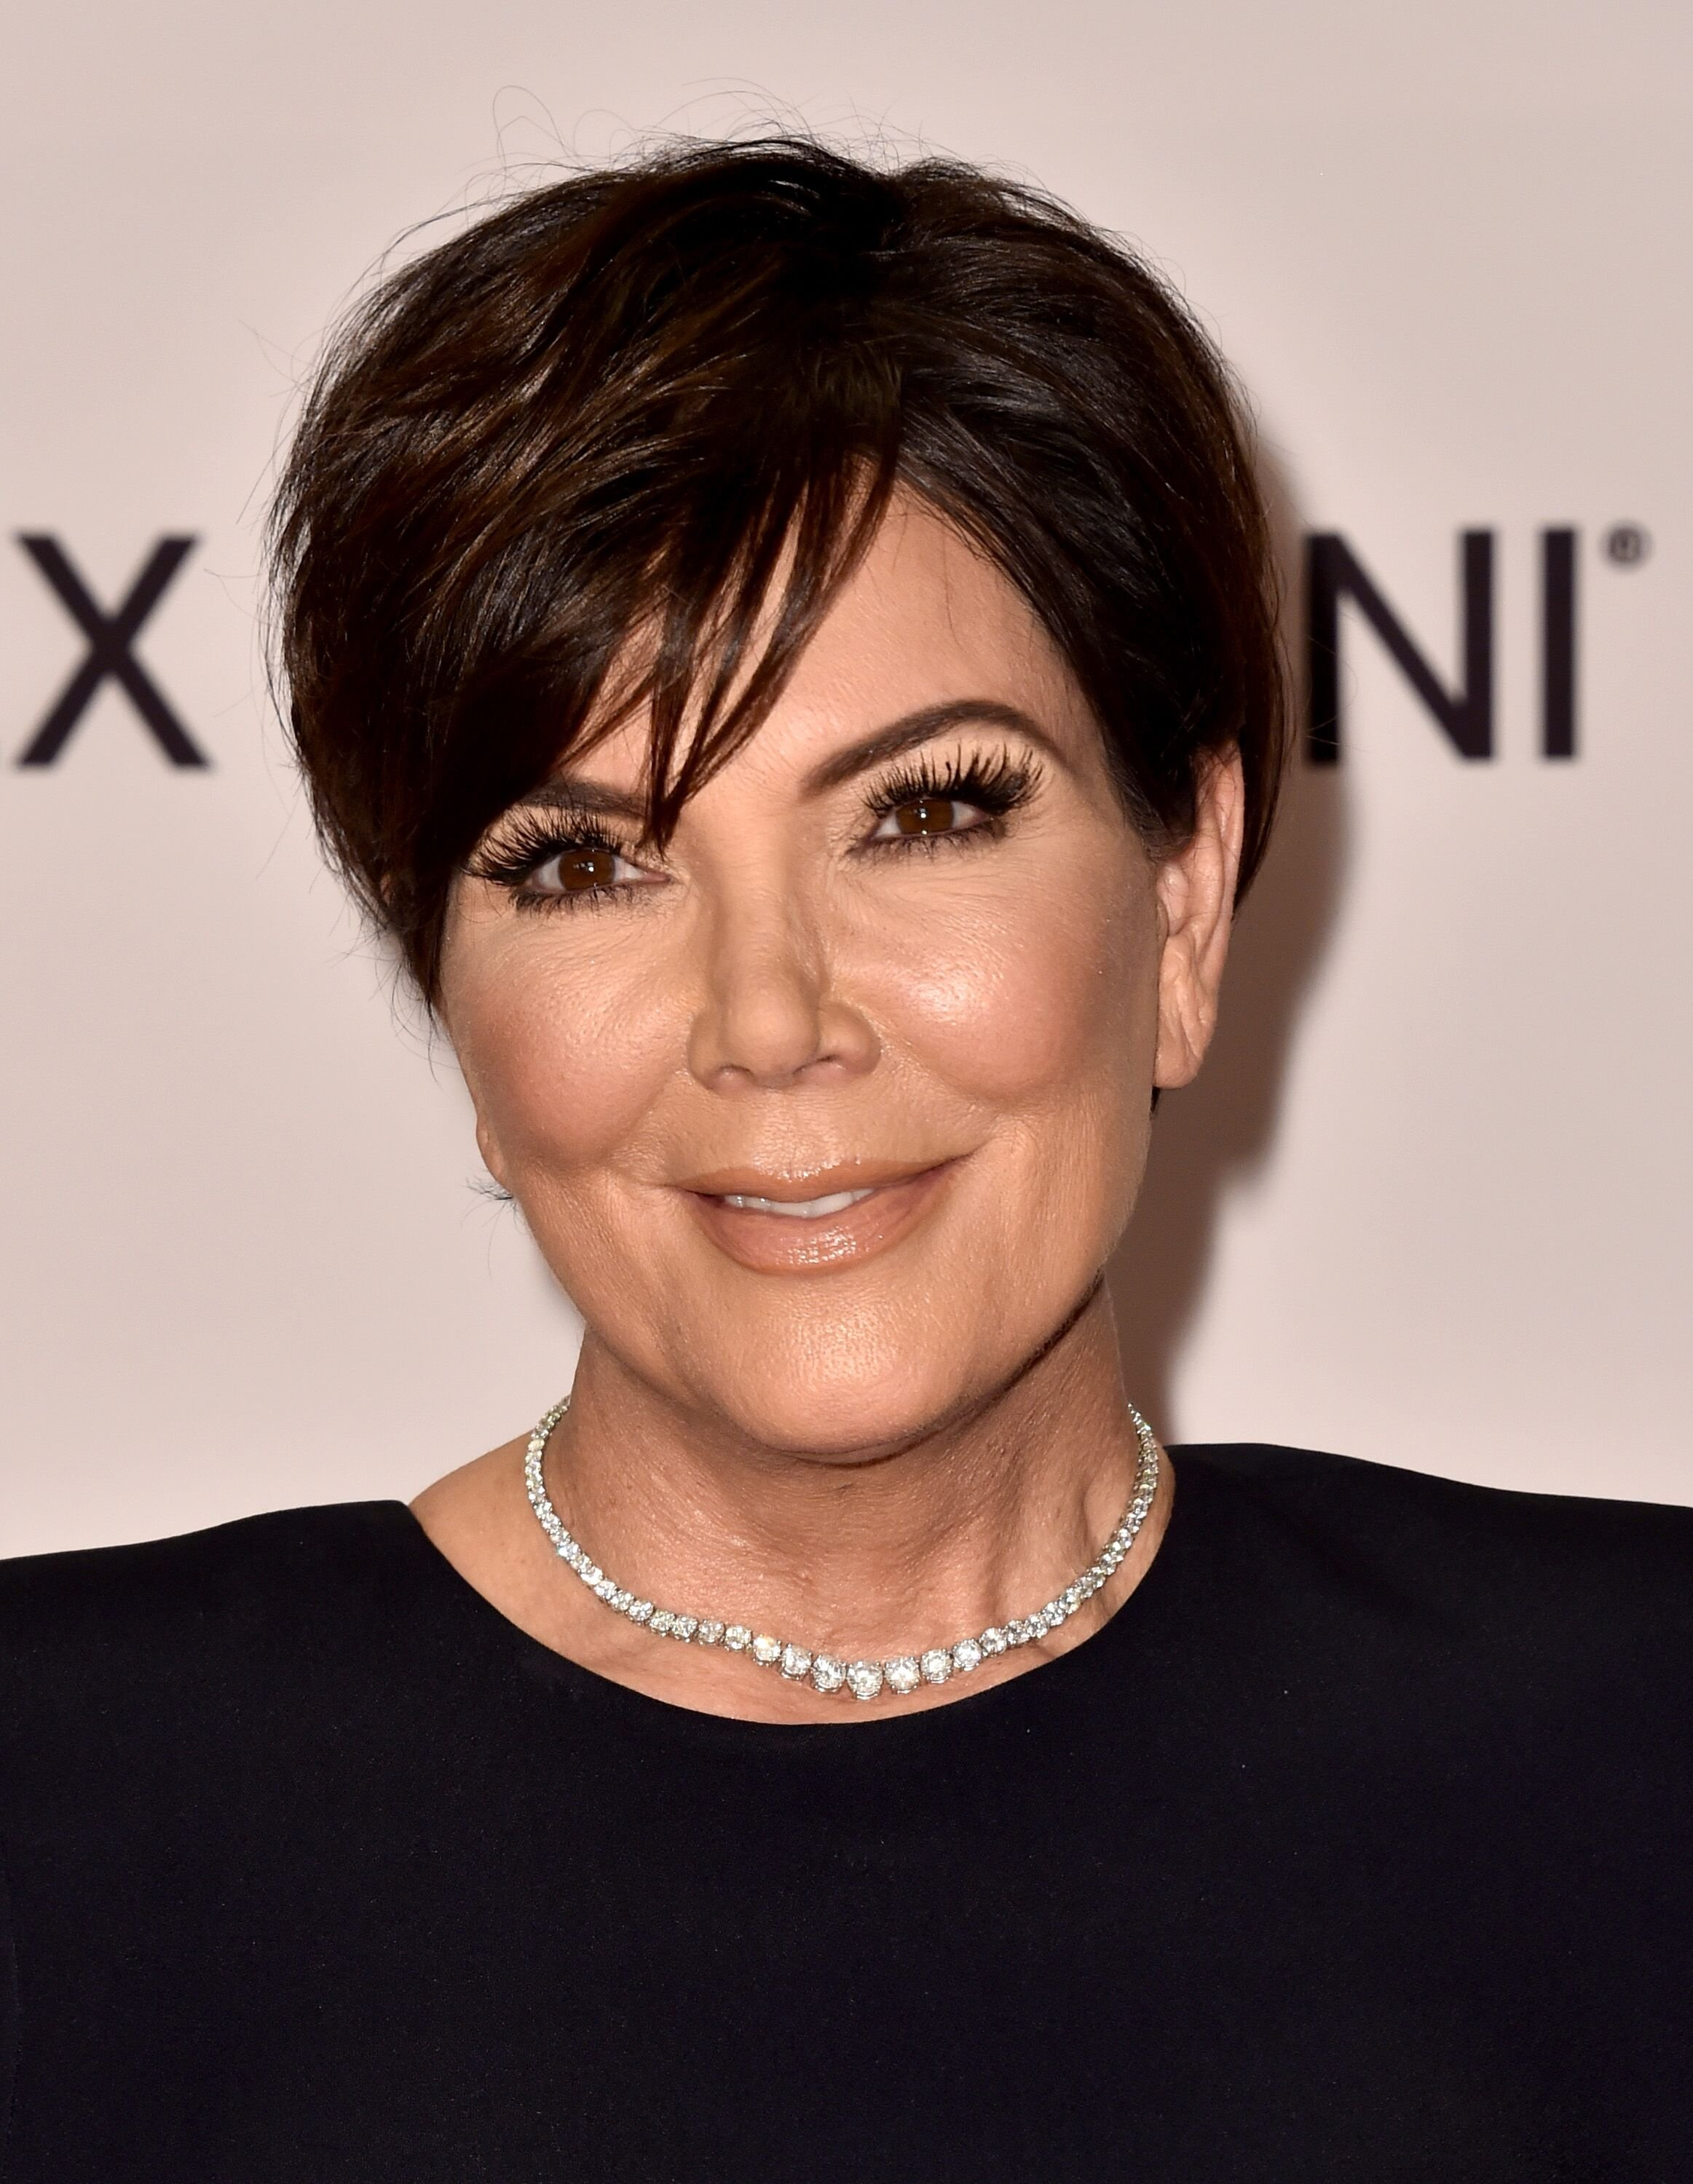 Kris Jenner à l'hôtel Beverly Hilton le 5 mai 2017. | Photo : Getty Images